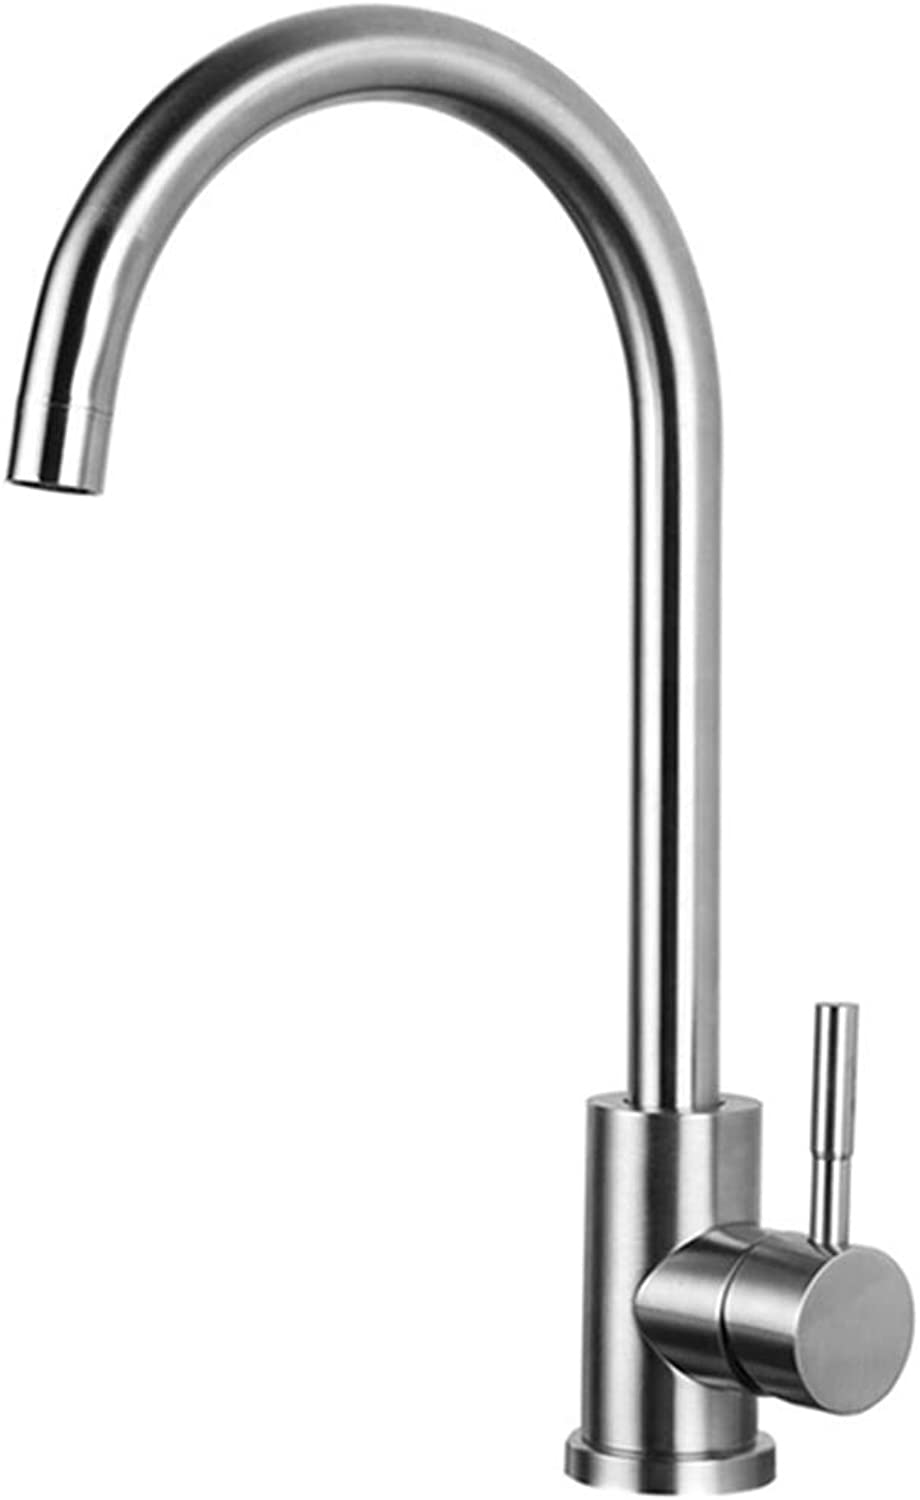 FZHLR Kitchen Faucet 360 Degree Swivel Stainless Steel Kitchen Sink Faucet Single Handle Hot and Cold Mixer Sink Faucet Brushed Nickel